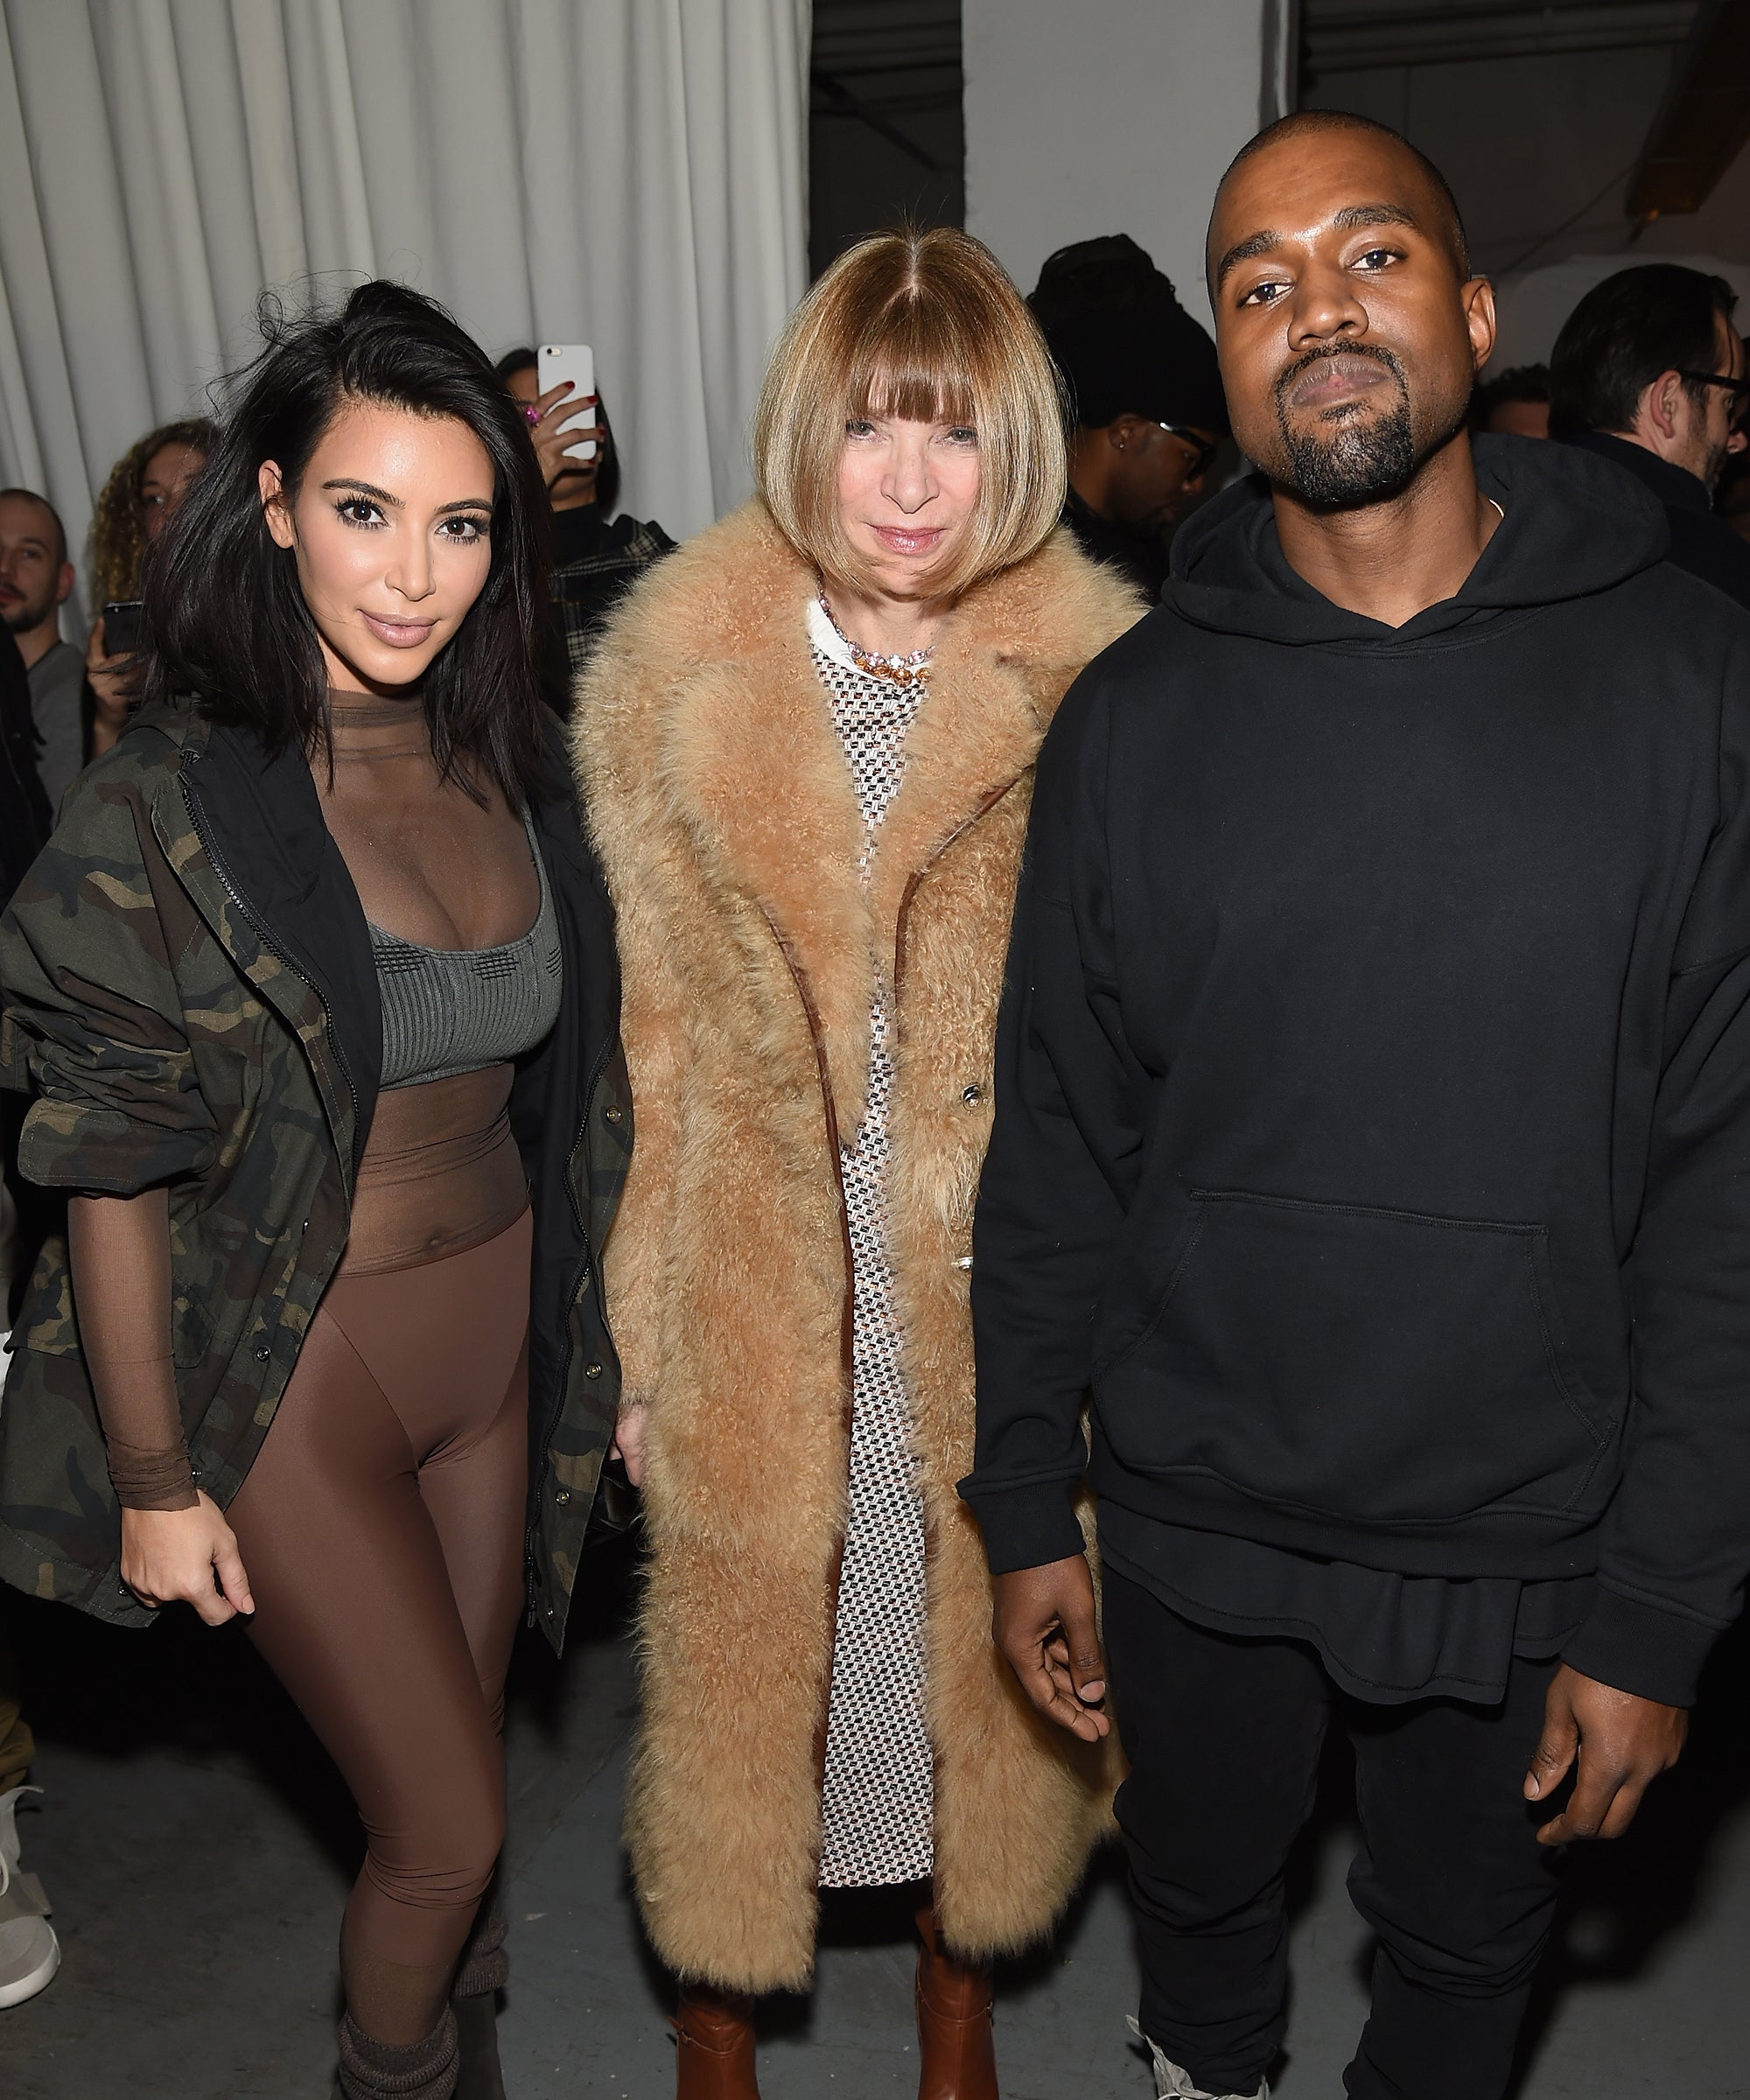 Anna Wintour Defended That Controversial Kimye Vogue Cover